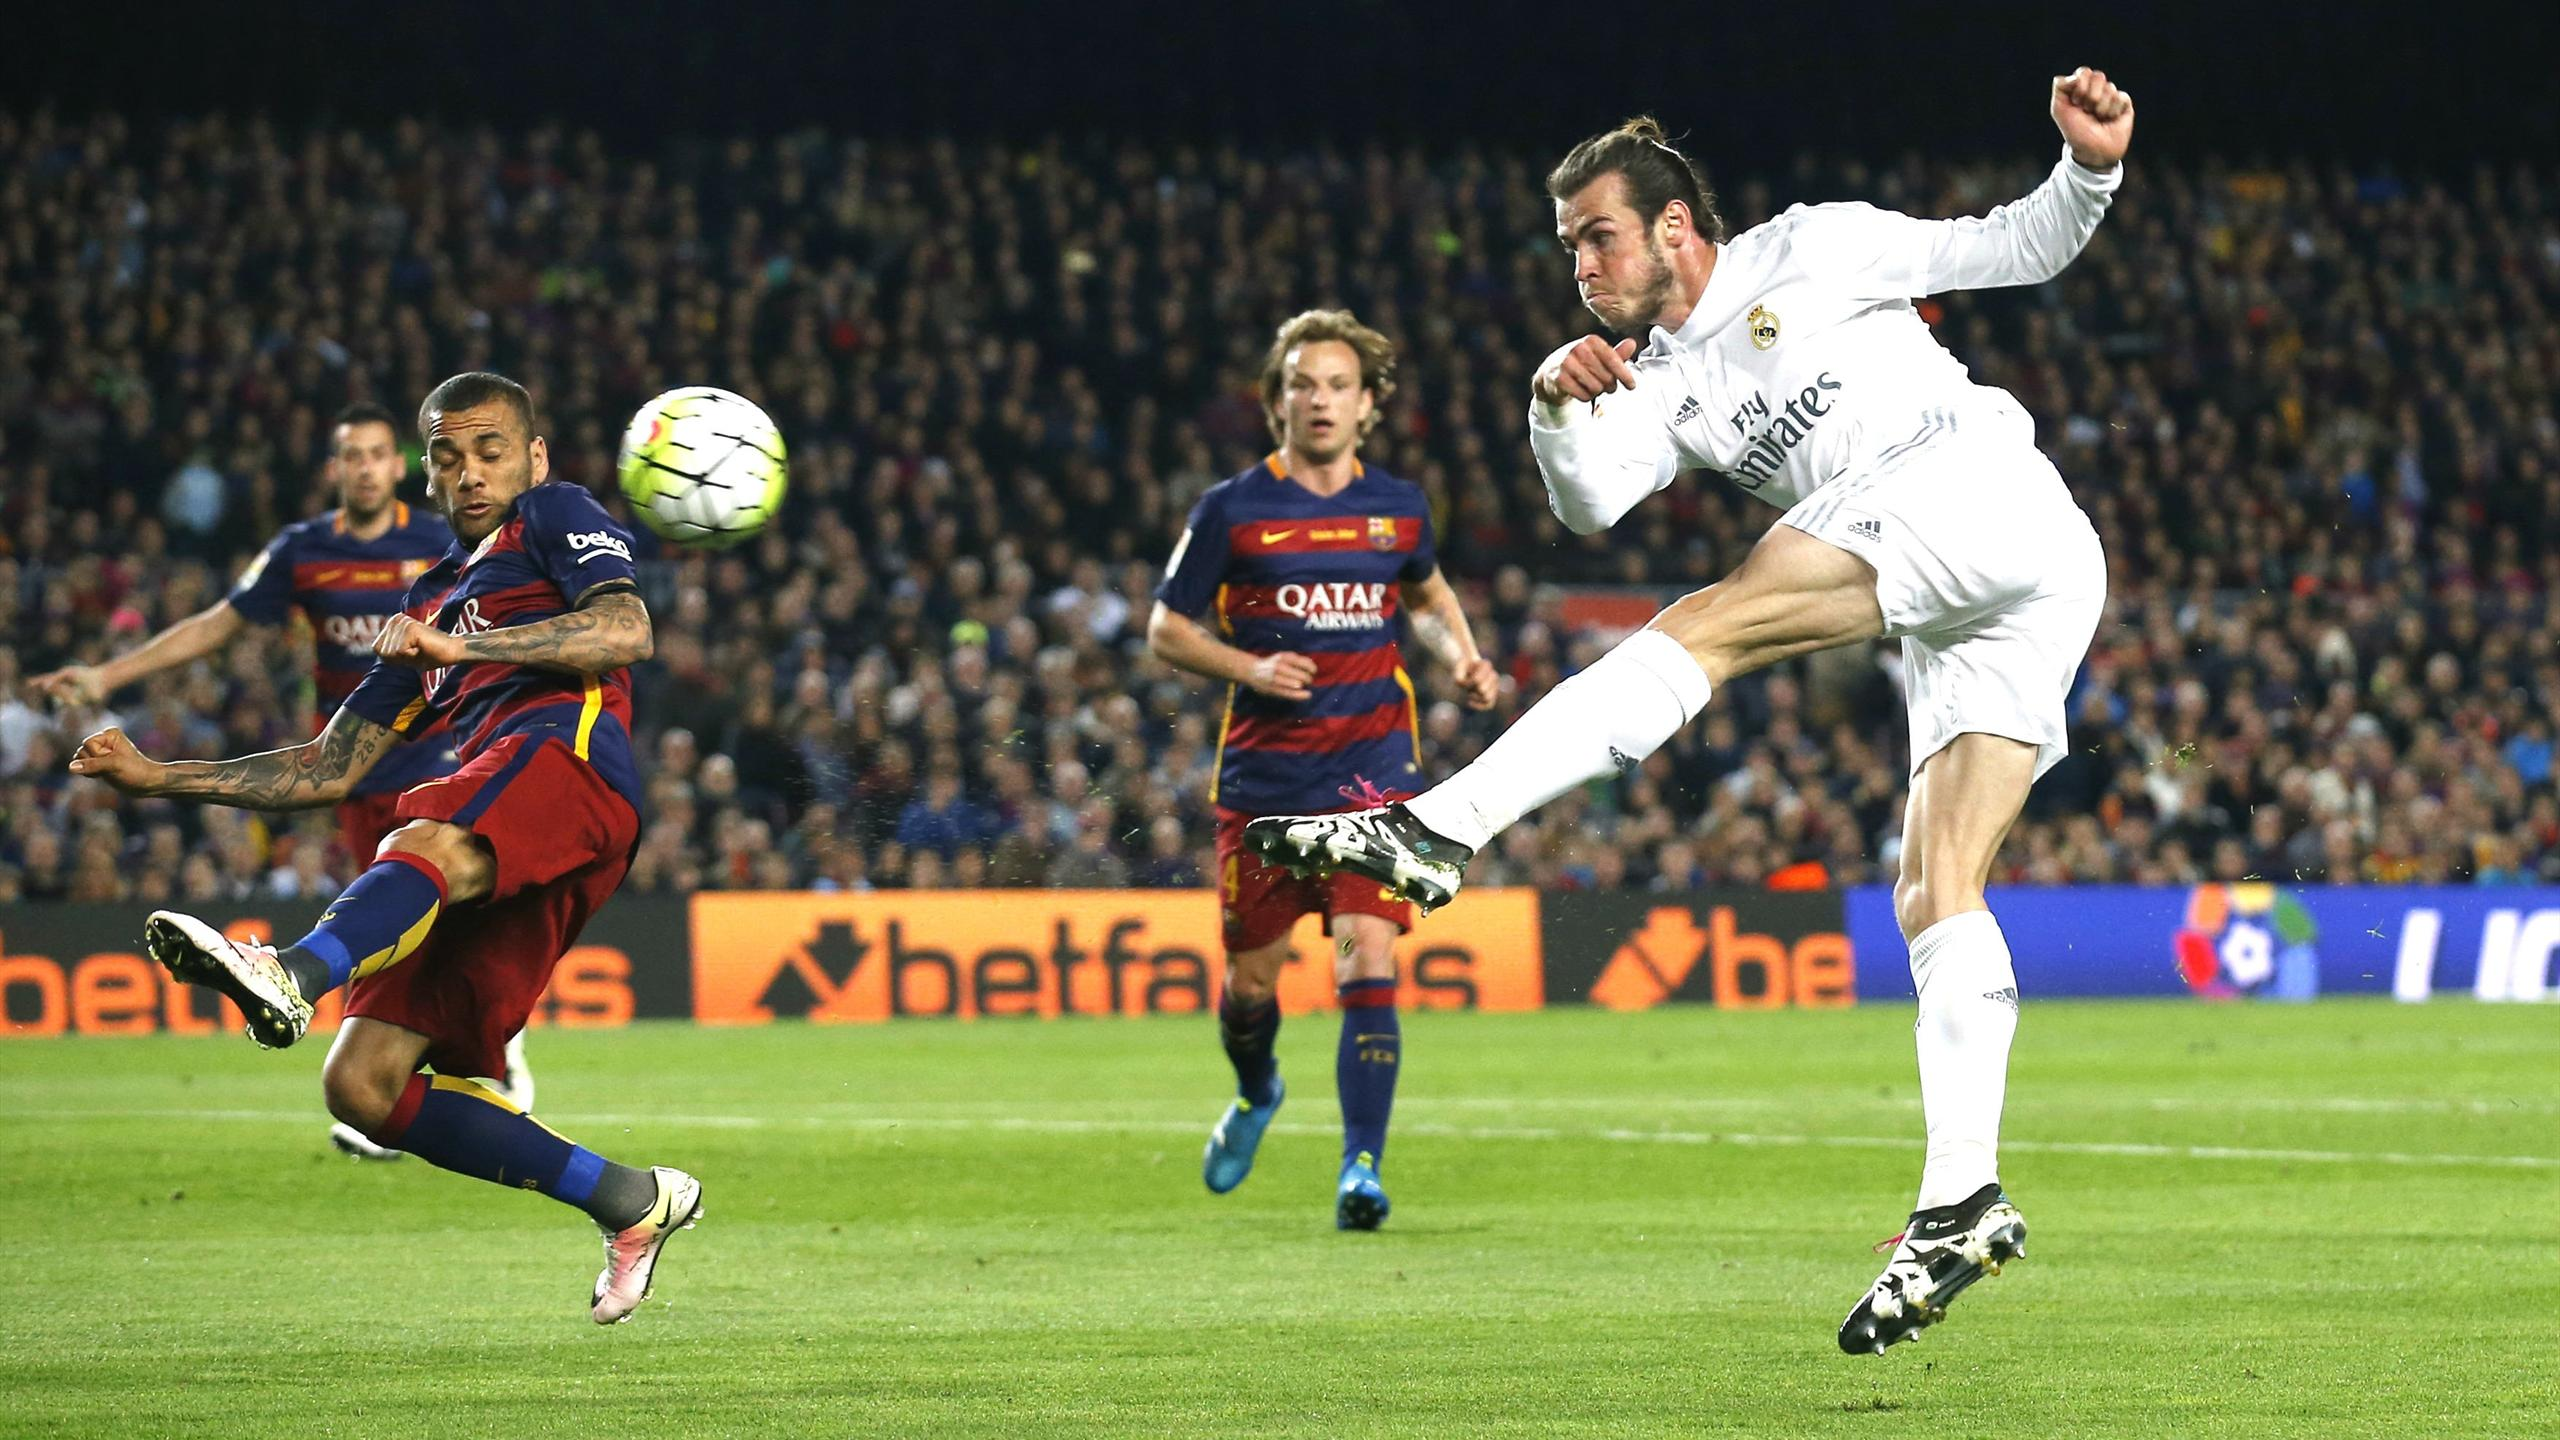 Real Madrid's Gareth Bale takes a shot against Barcelona